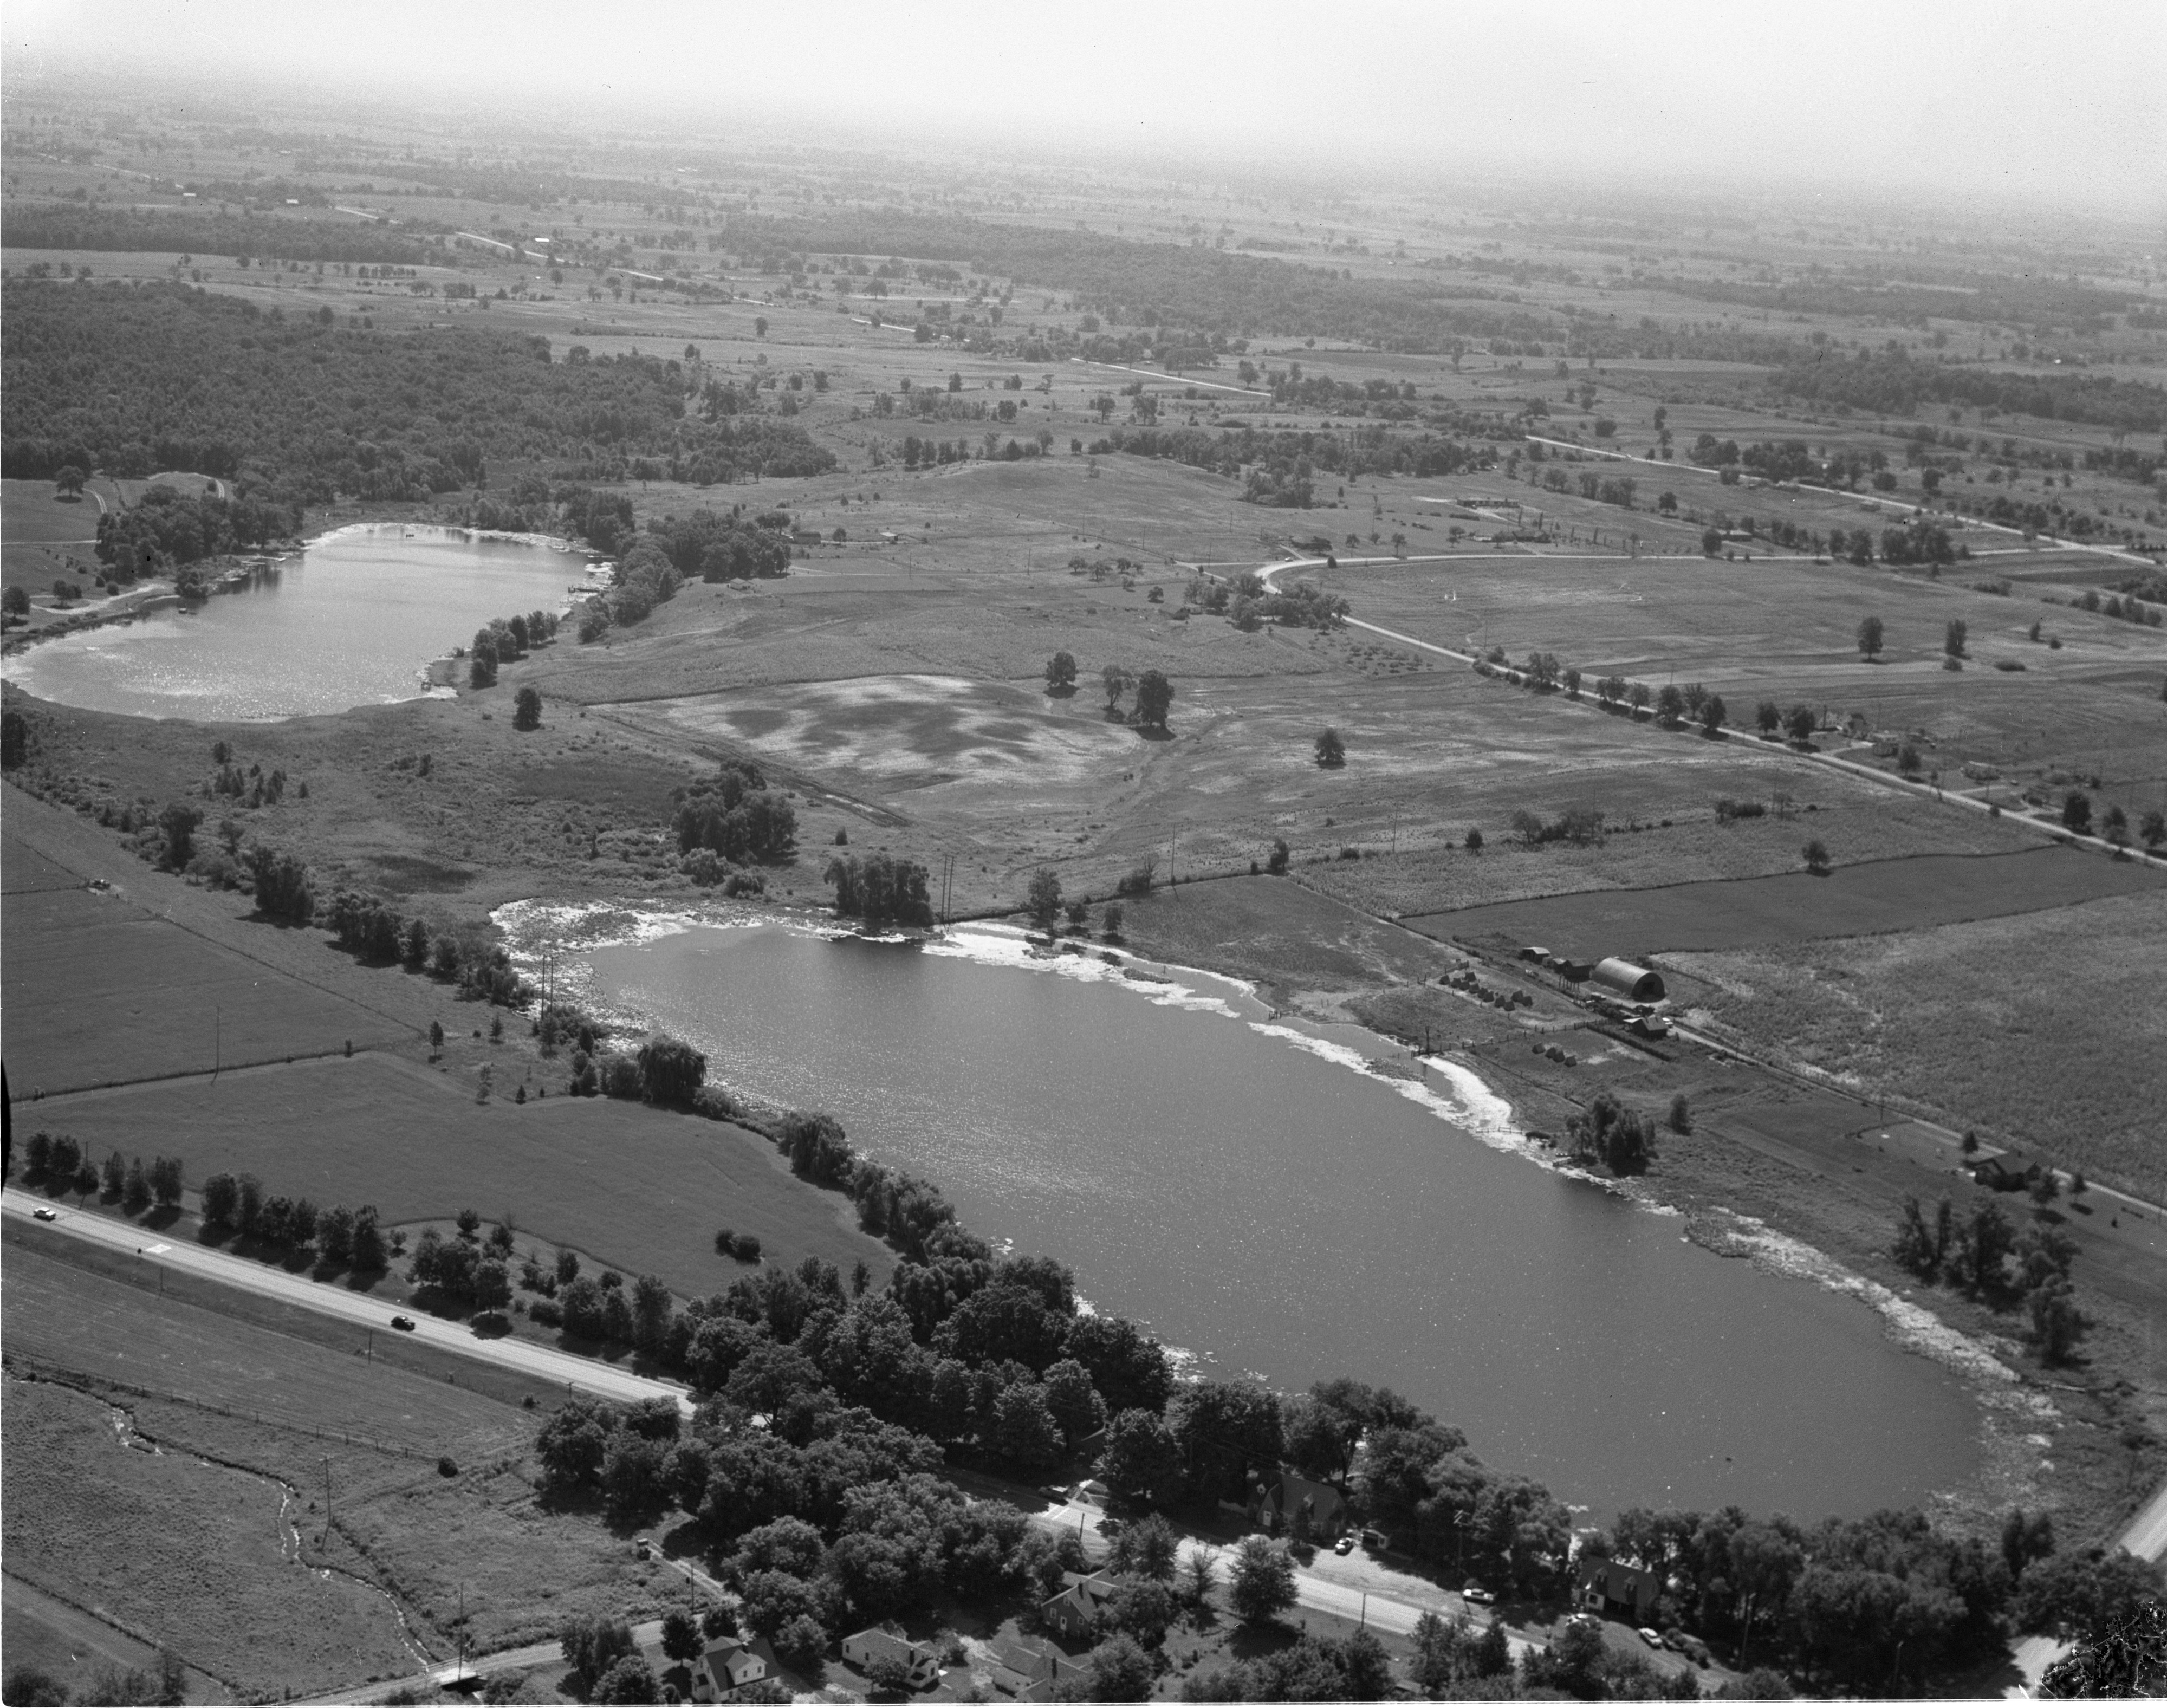 Aerial View Of Frain's Lake & Murray's Lake - Superior Township, August 1956 image